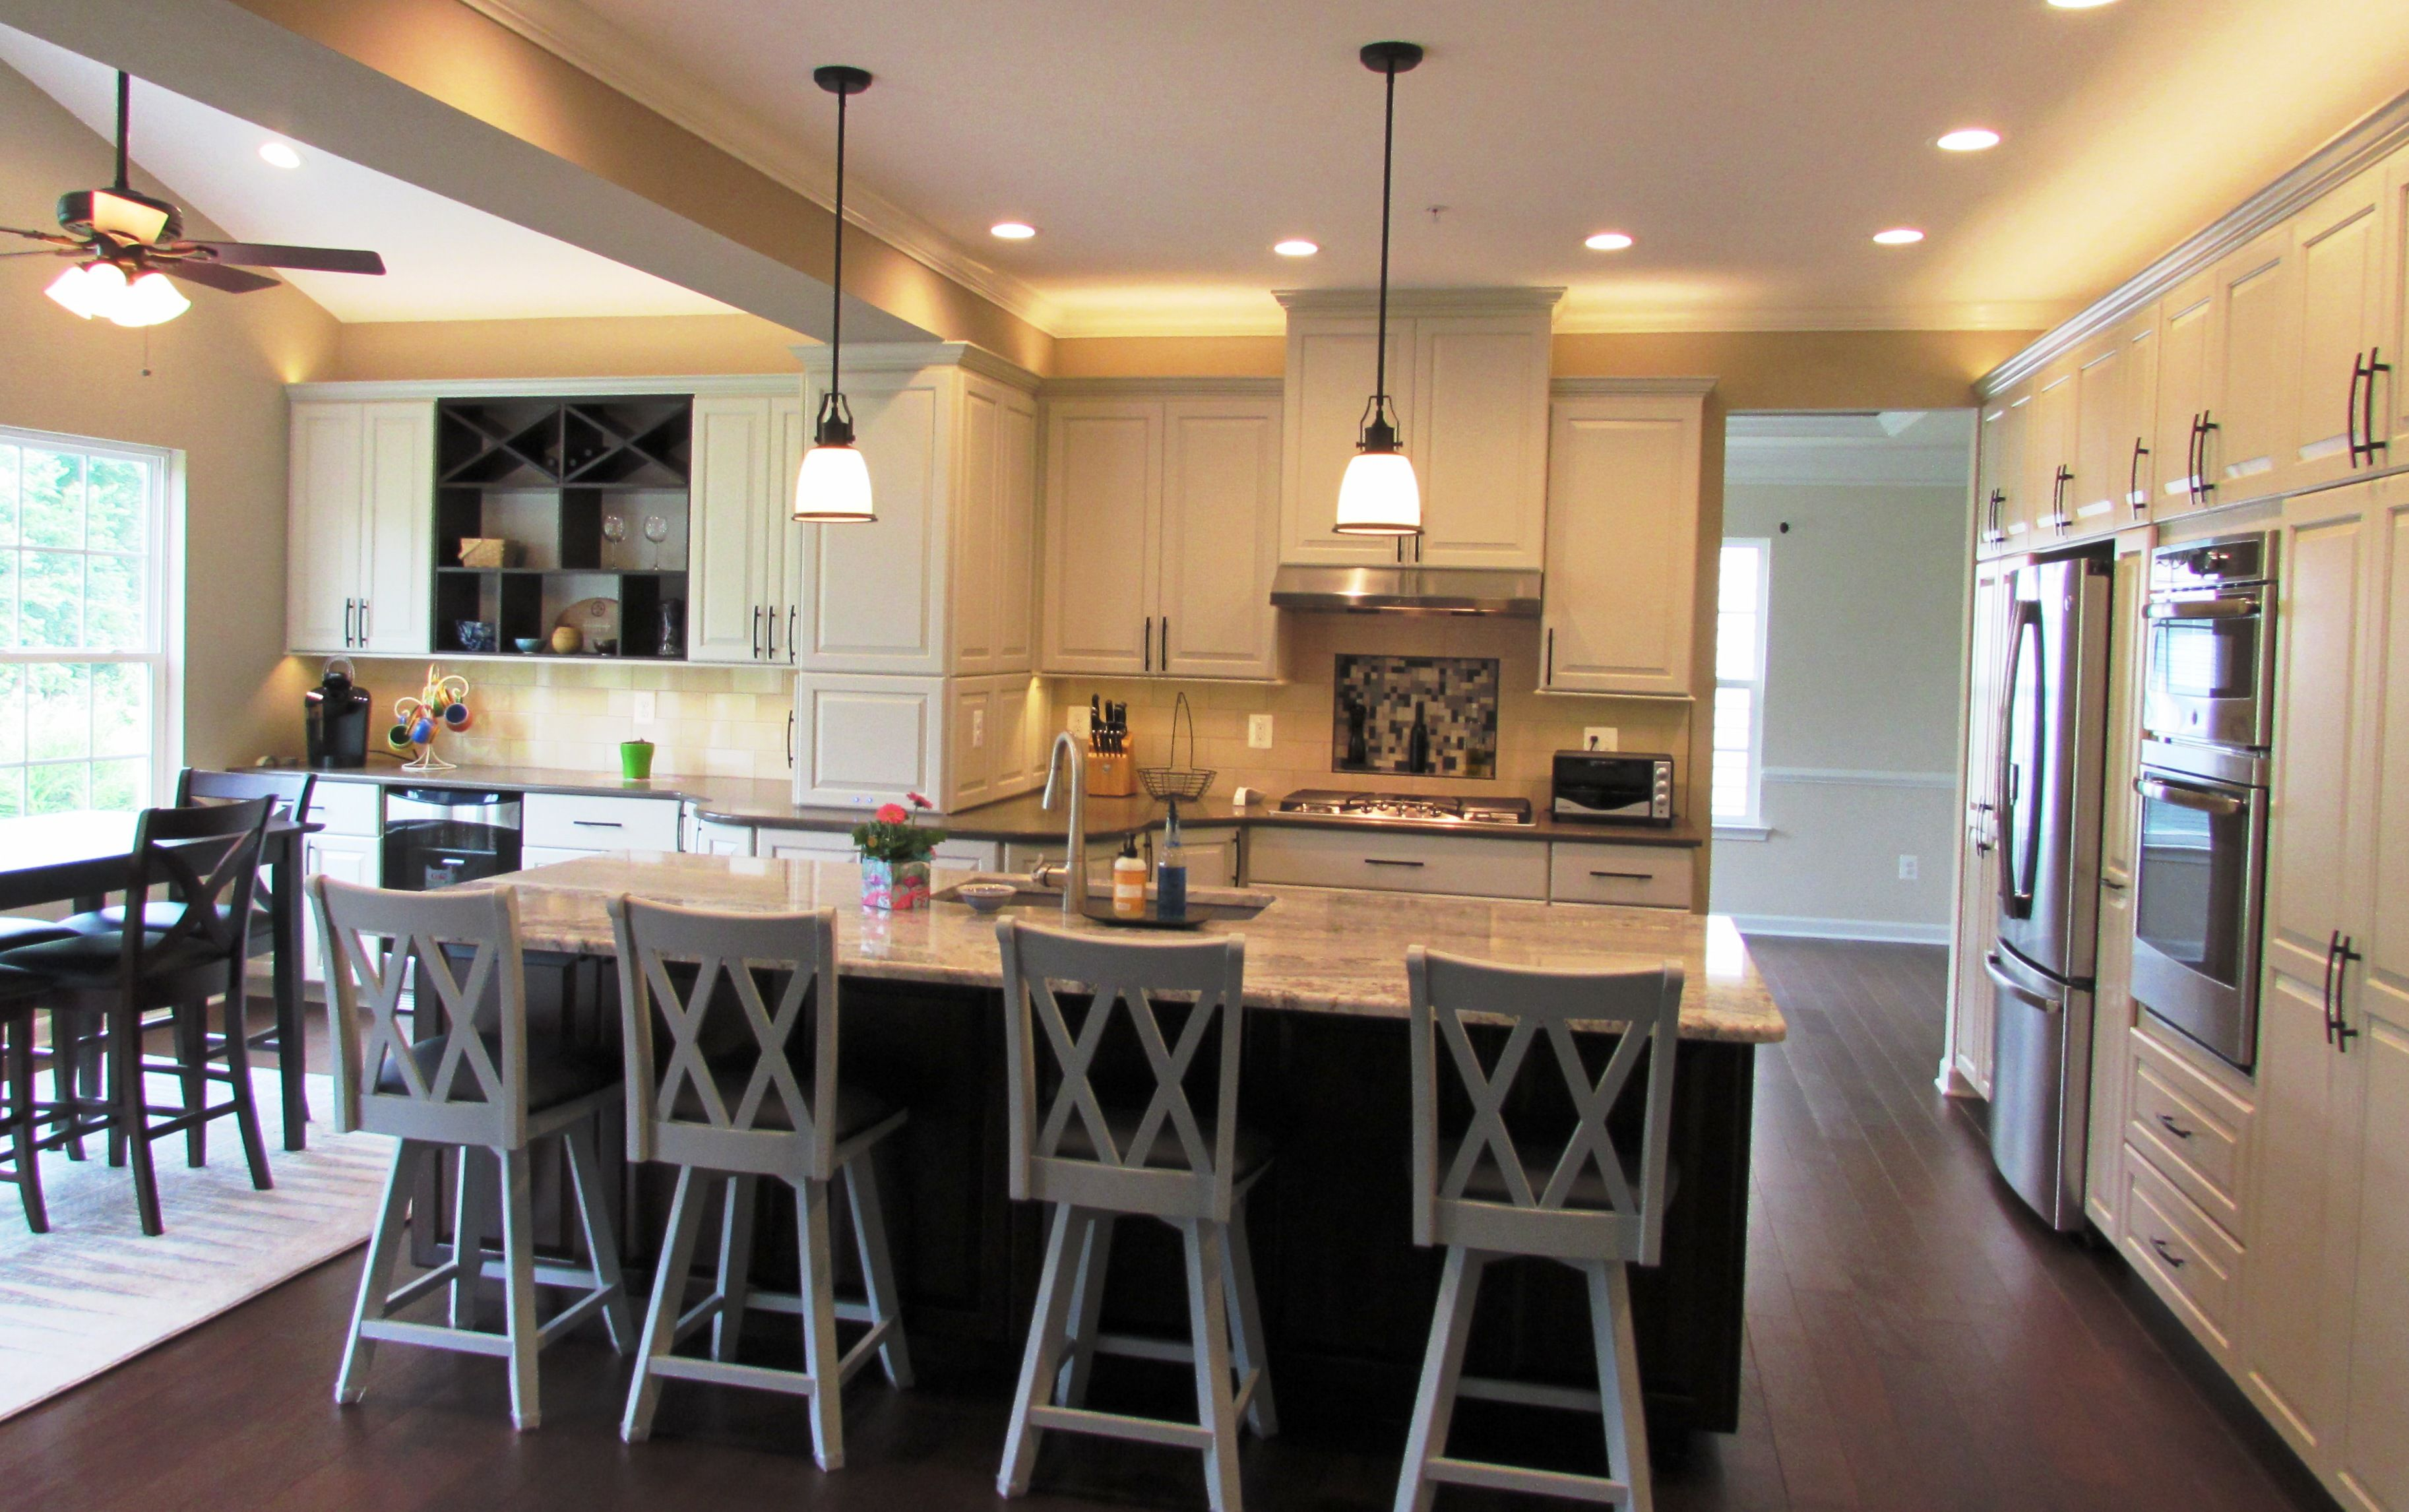 Great Urbana, MD Kitchen Remodel With Under Cabinet Lighting And Crown Lighting  Above Design Inspirations